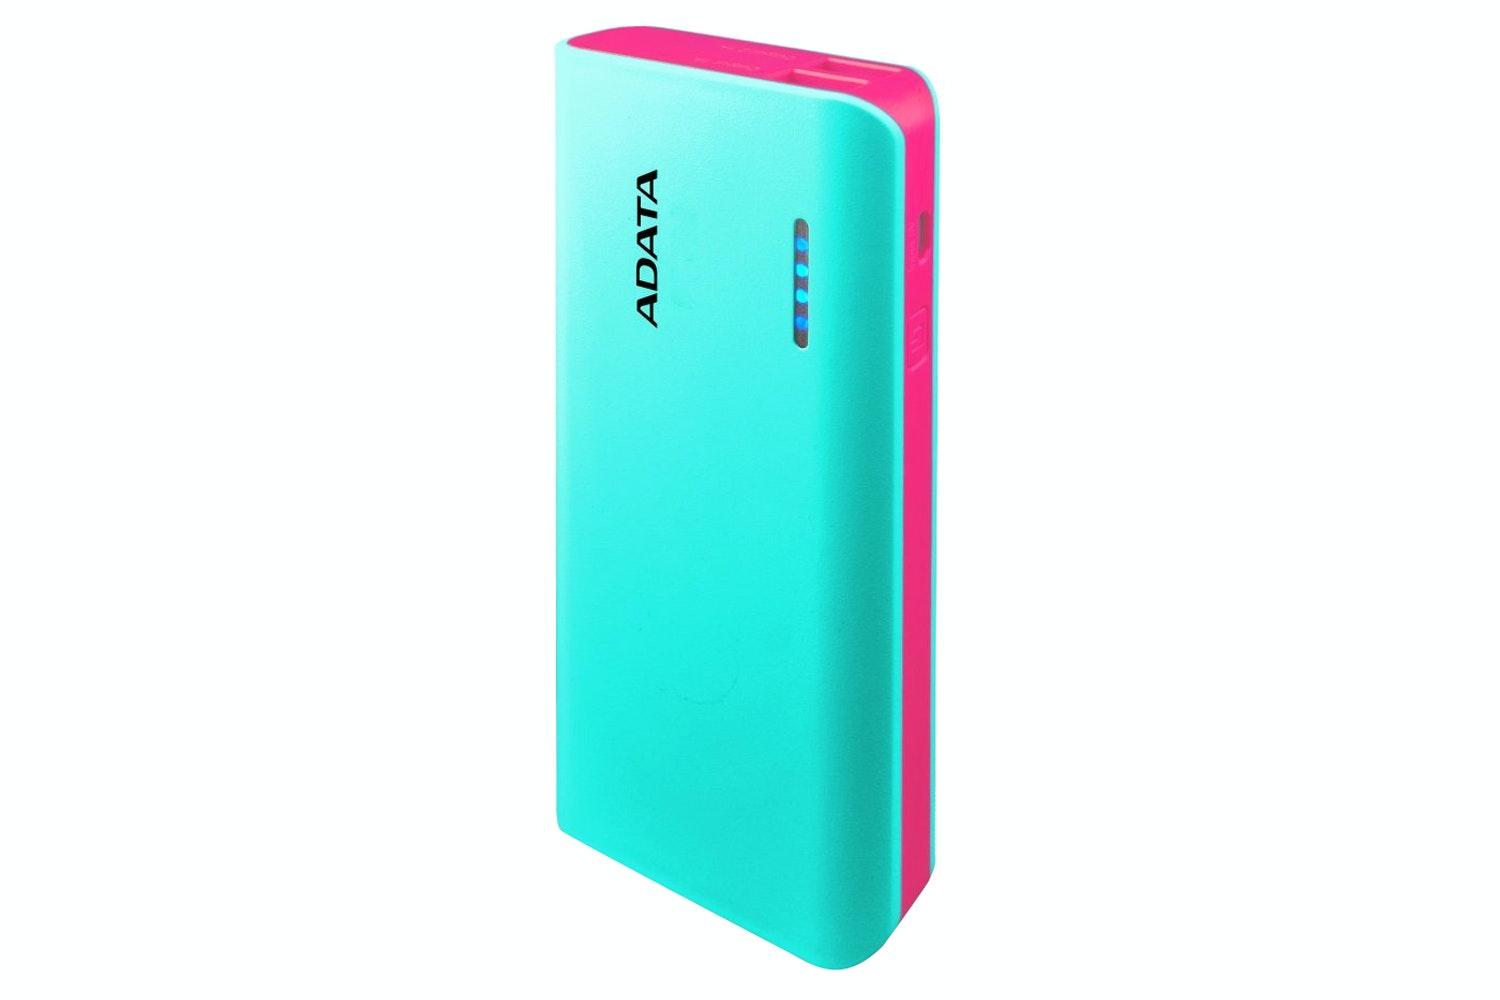 ADATA PT100 Power Bank | Tiffany Blue/Pink